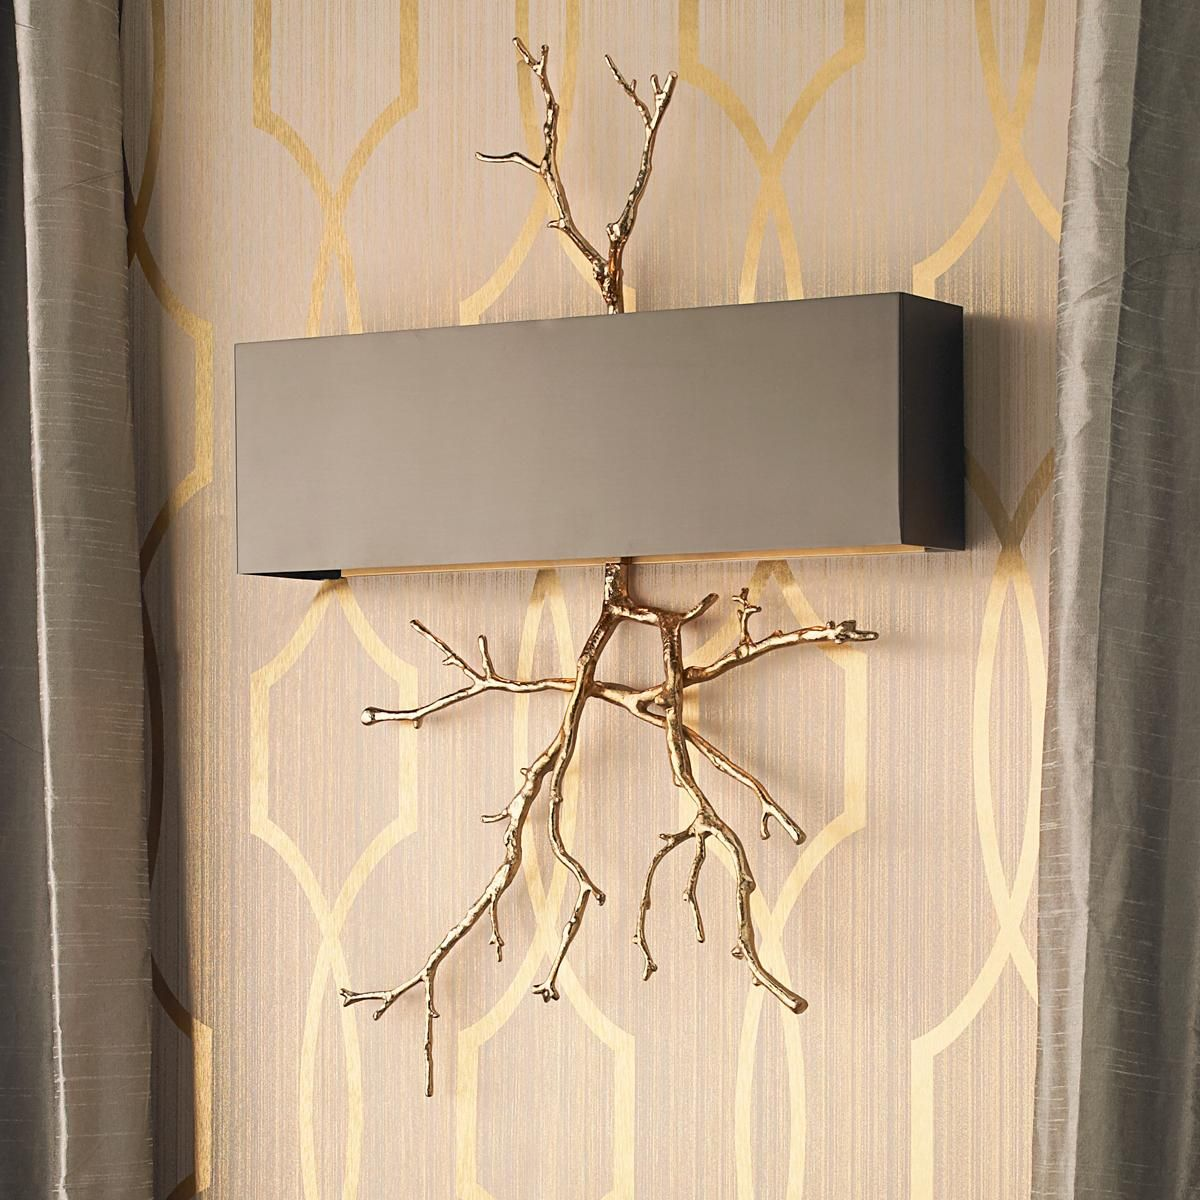 Sculptural twig wall sconce a sculptural branch in golden brass sculptural twig wall sconce a sculptural branch in golden brass with a rich bronze metal shade amipublicfo Image collections